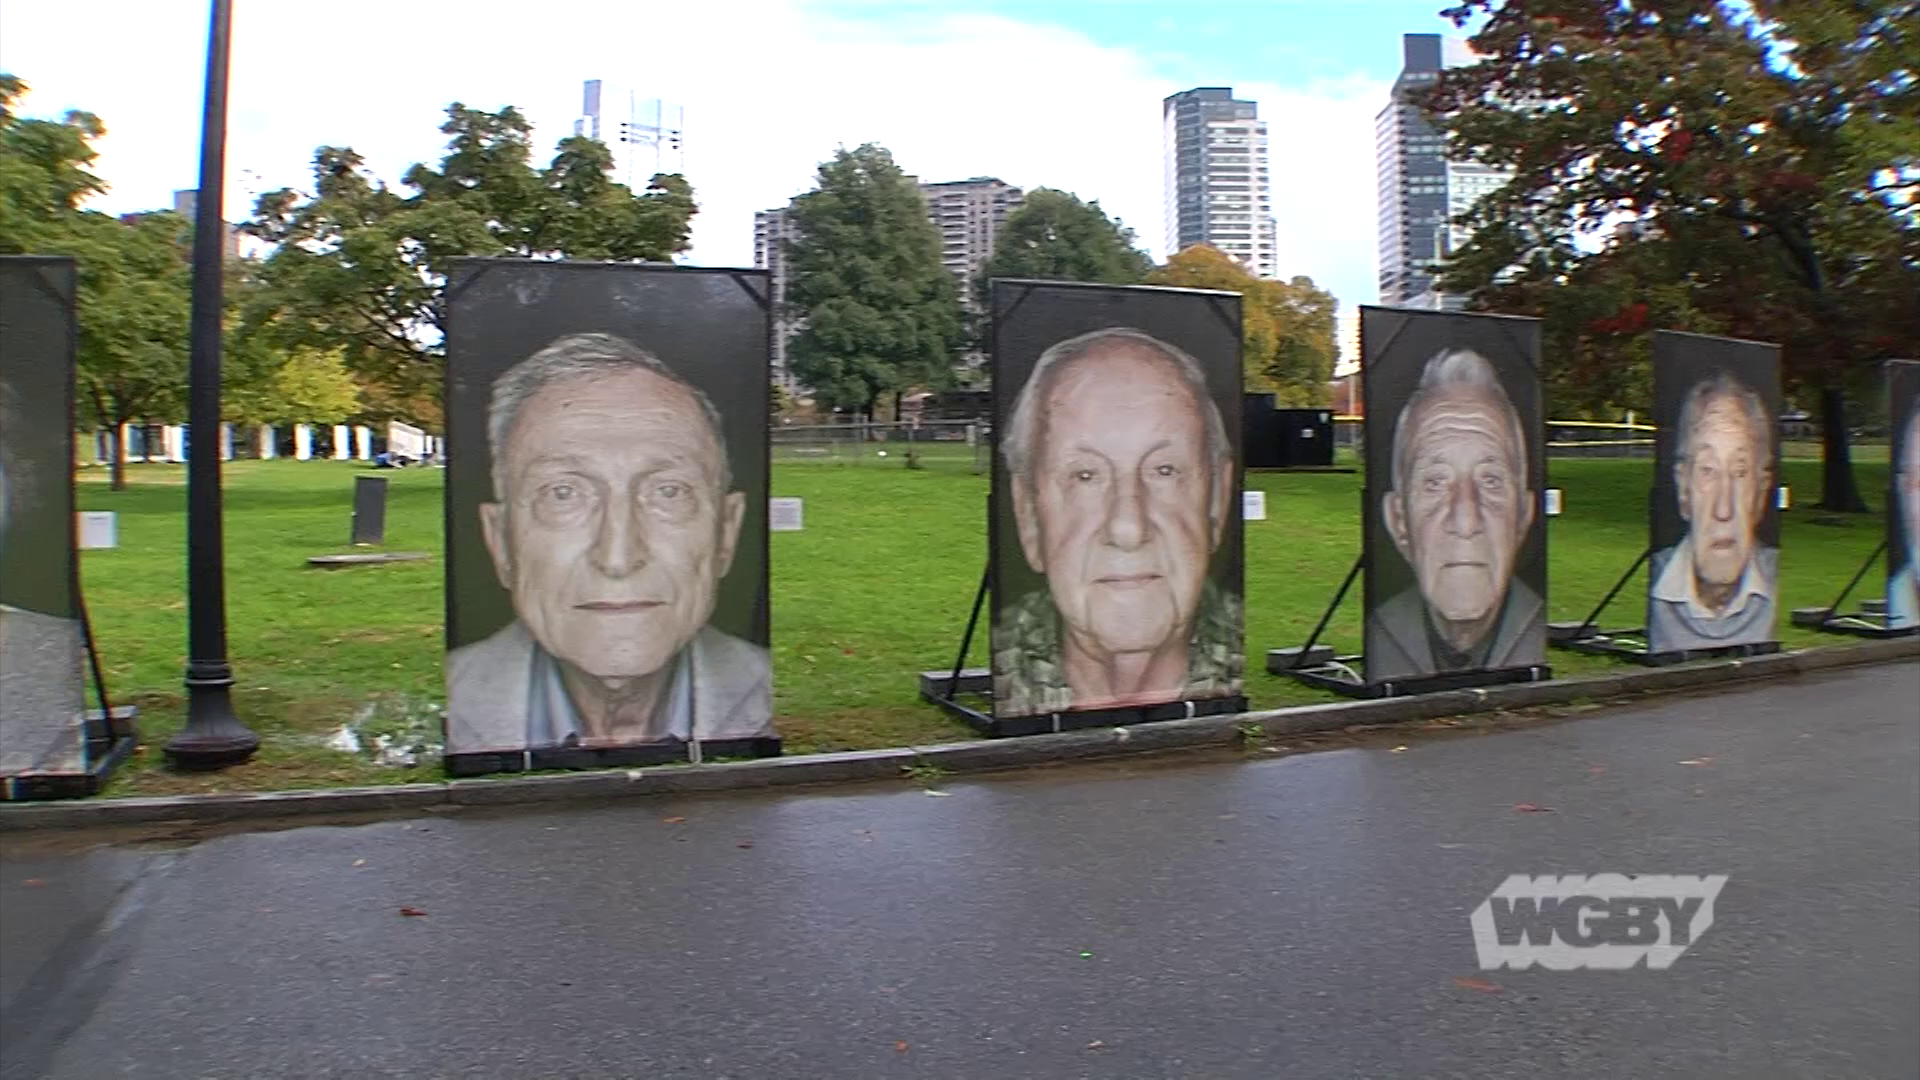 Italian-German photographer Luigi Toscano's Holocaust memorial on the Boston Common tells the harrowing stories of Holocaust survivors through public art.